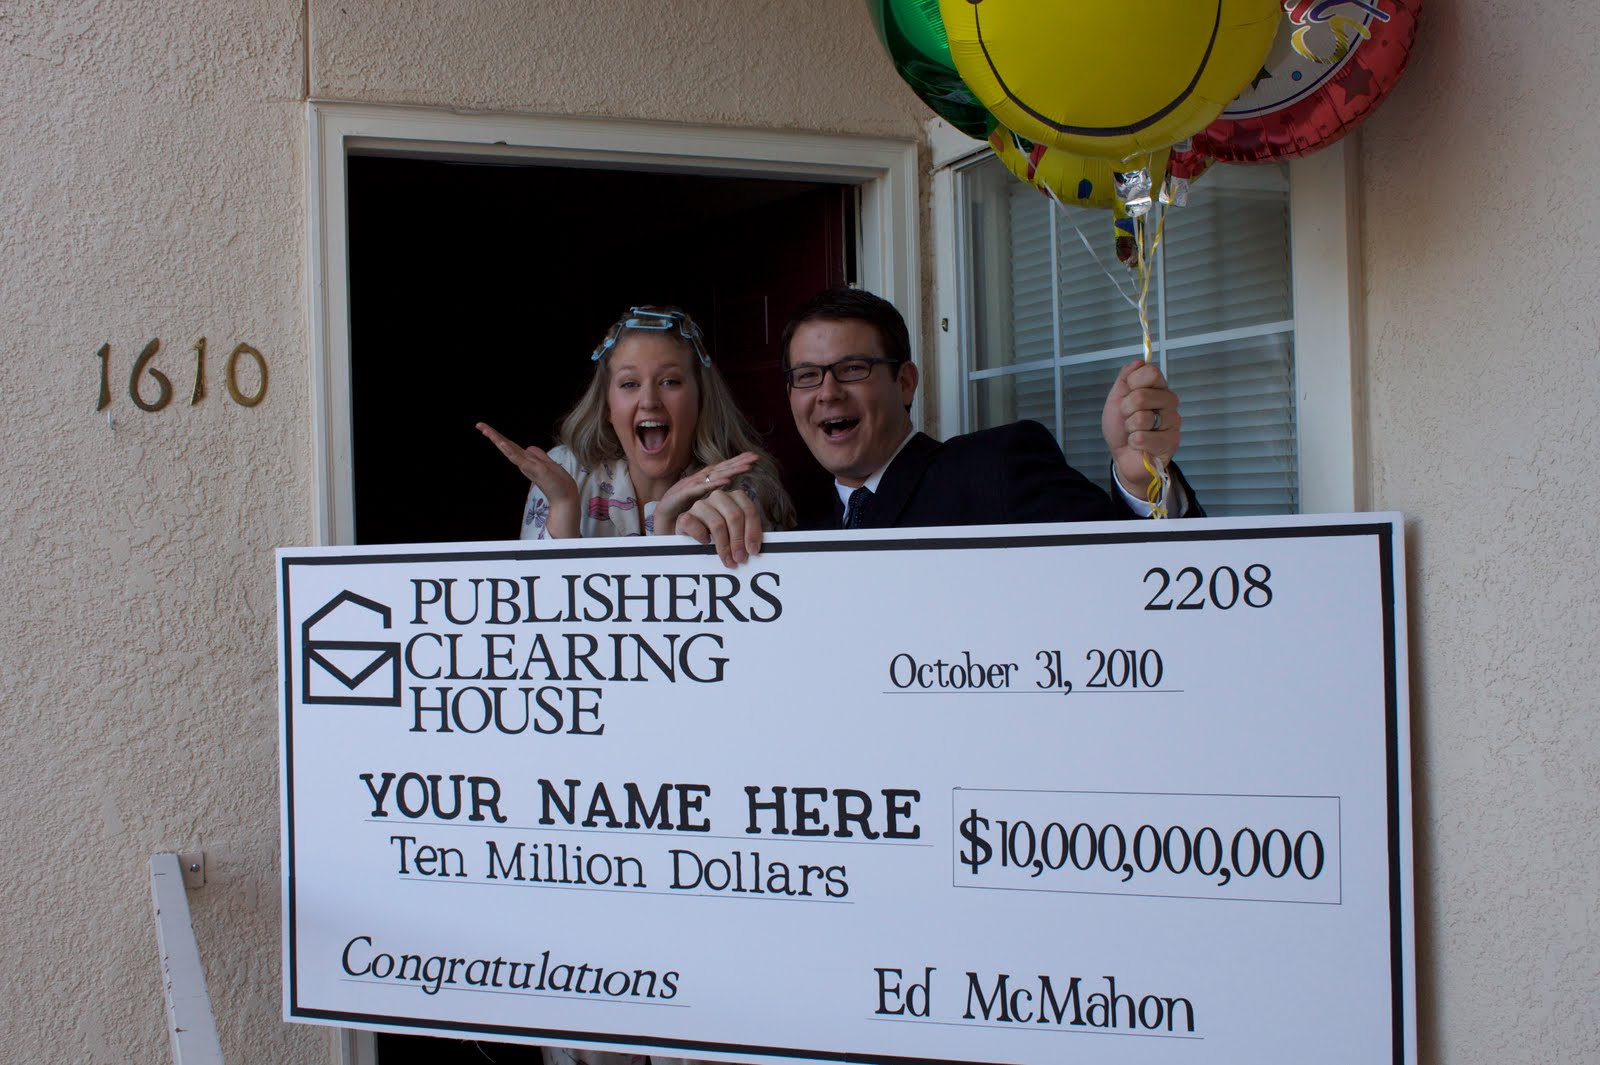 Publishers Clearing House Winner!